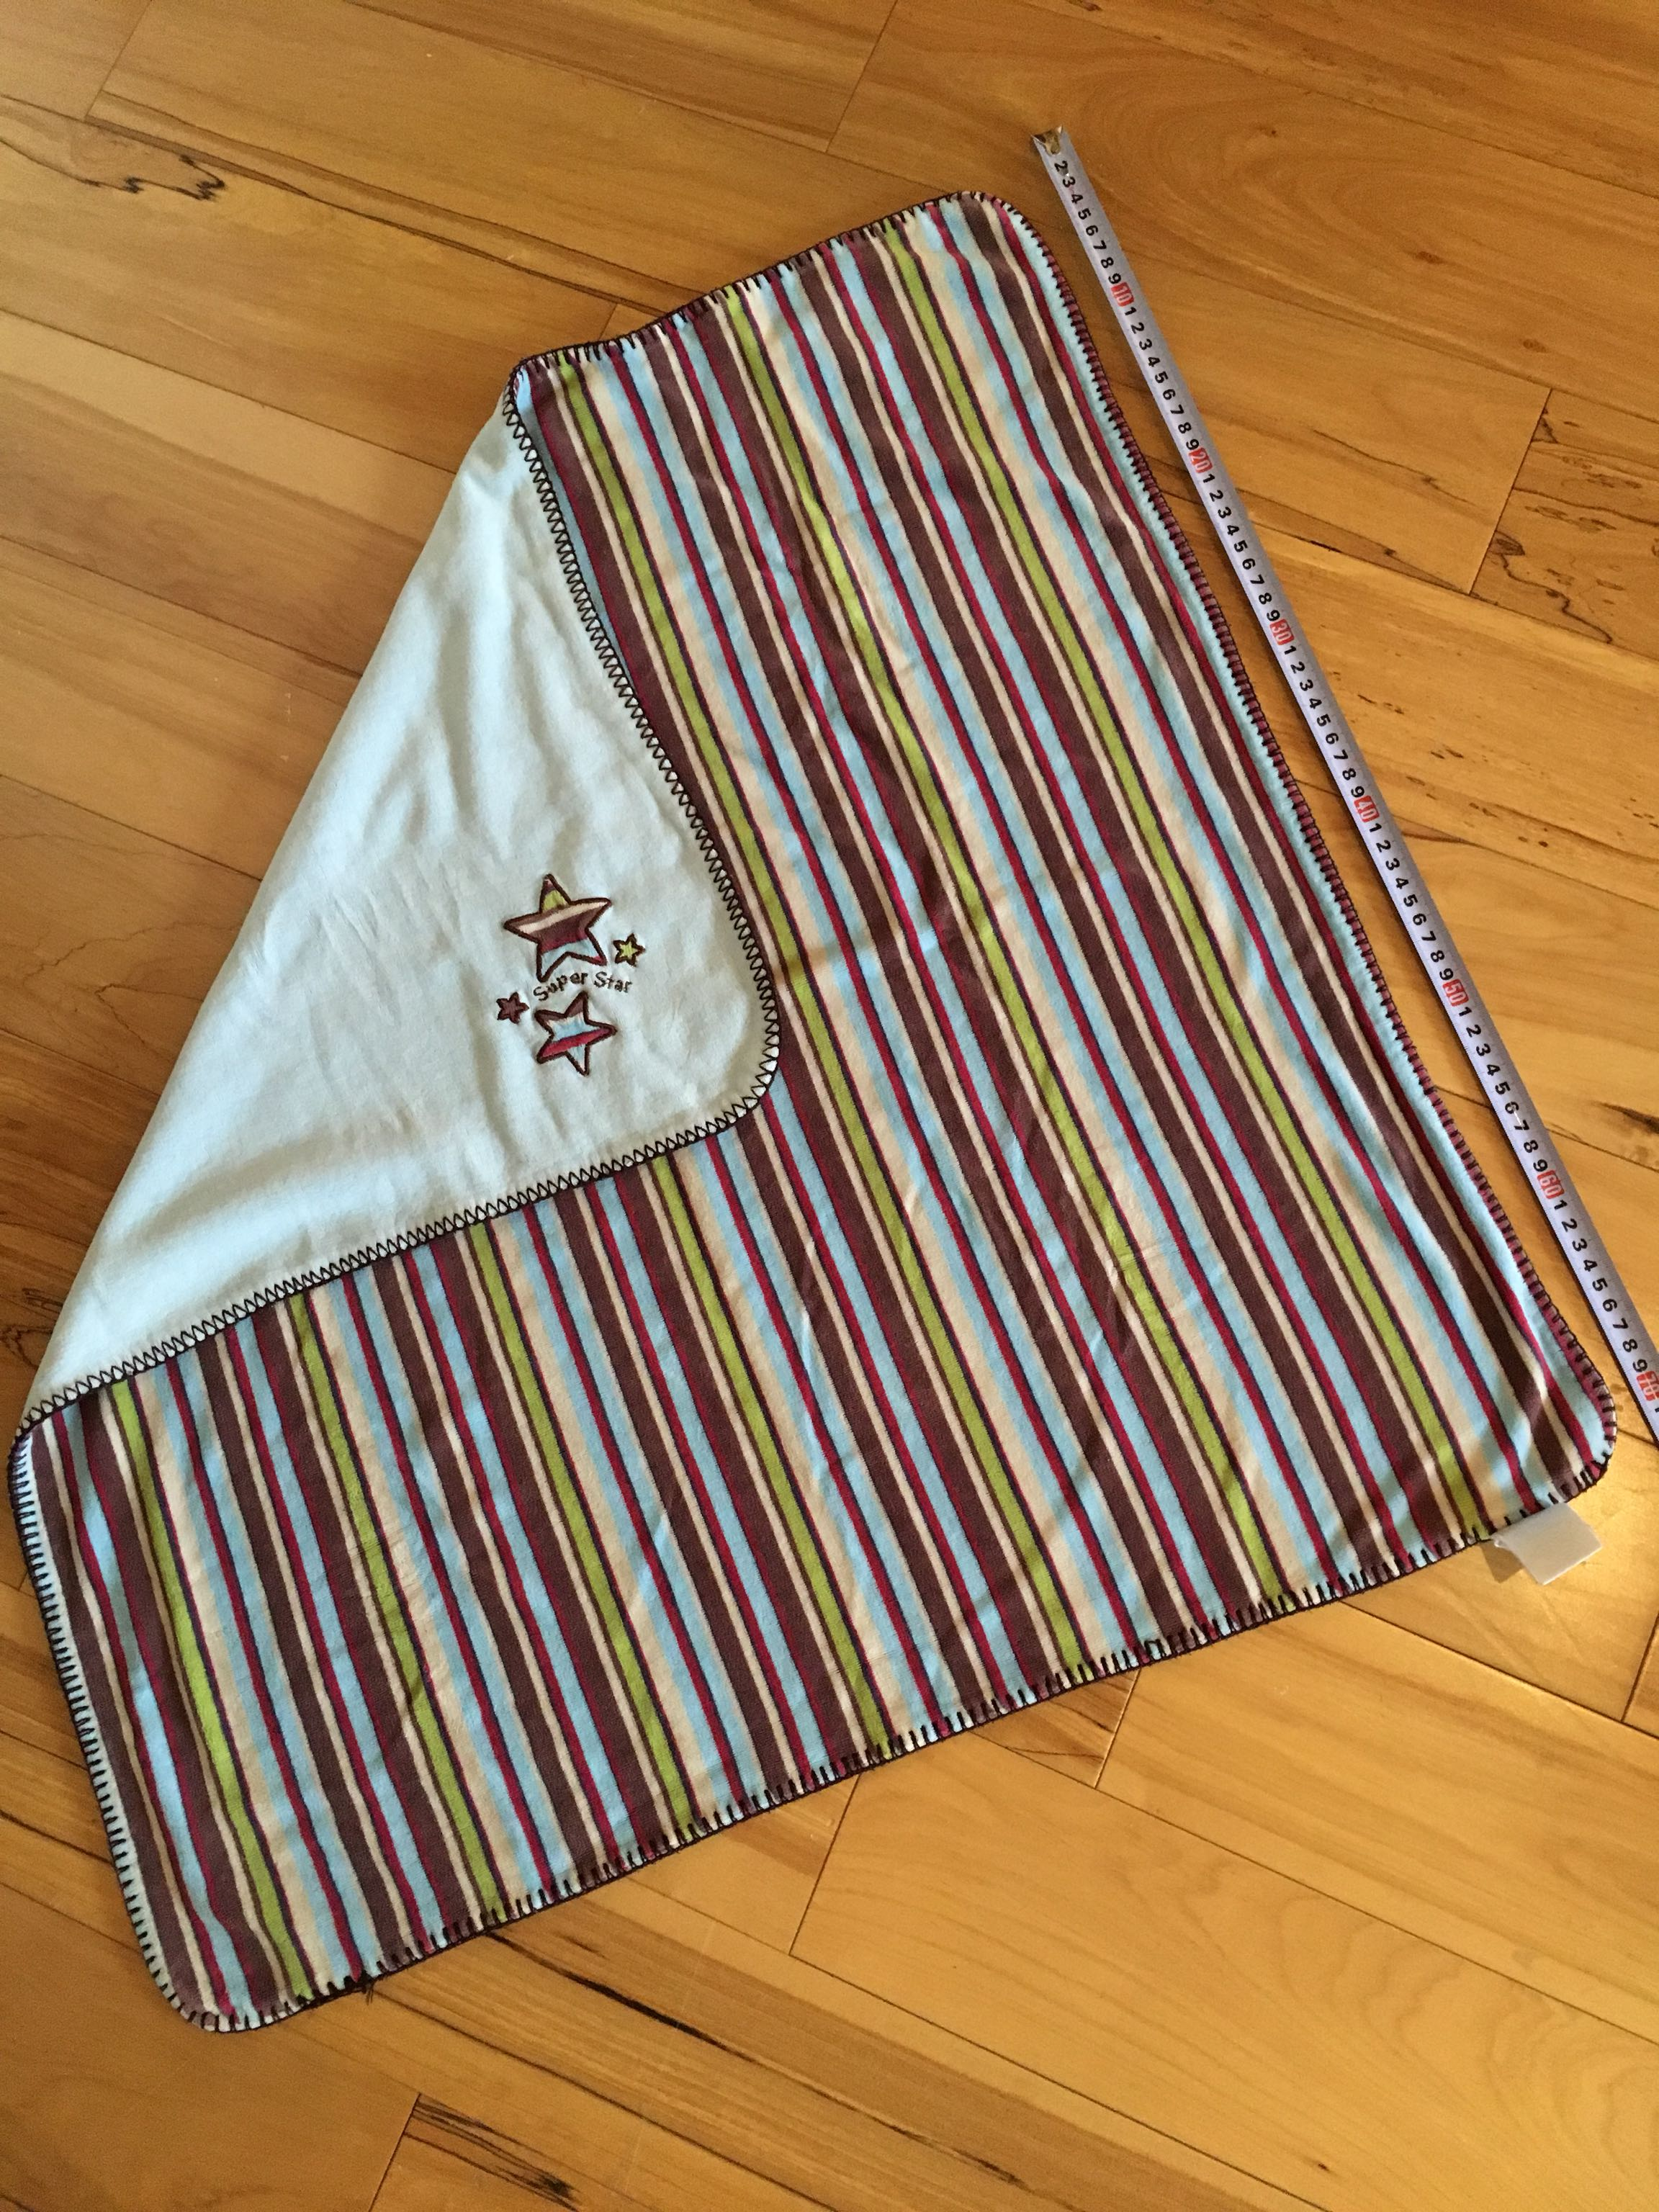 Think and minky baby blanket - very nice quality and the best for swaddling